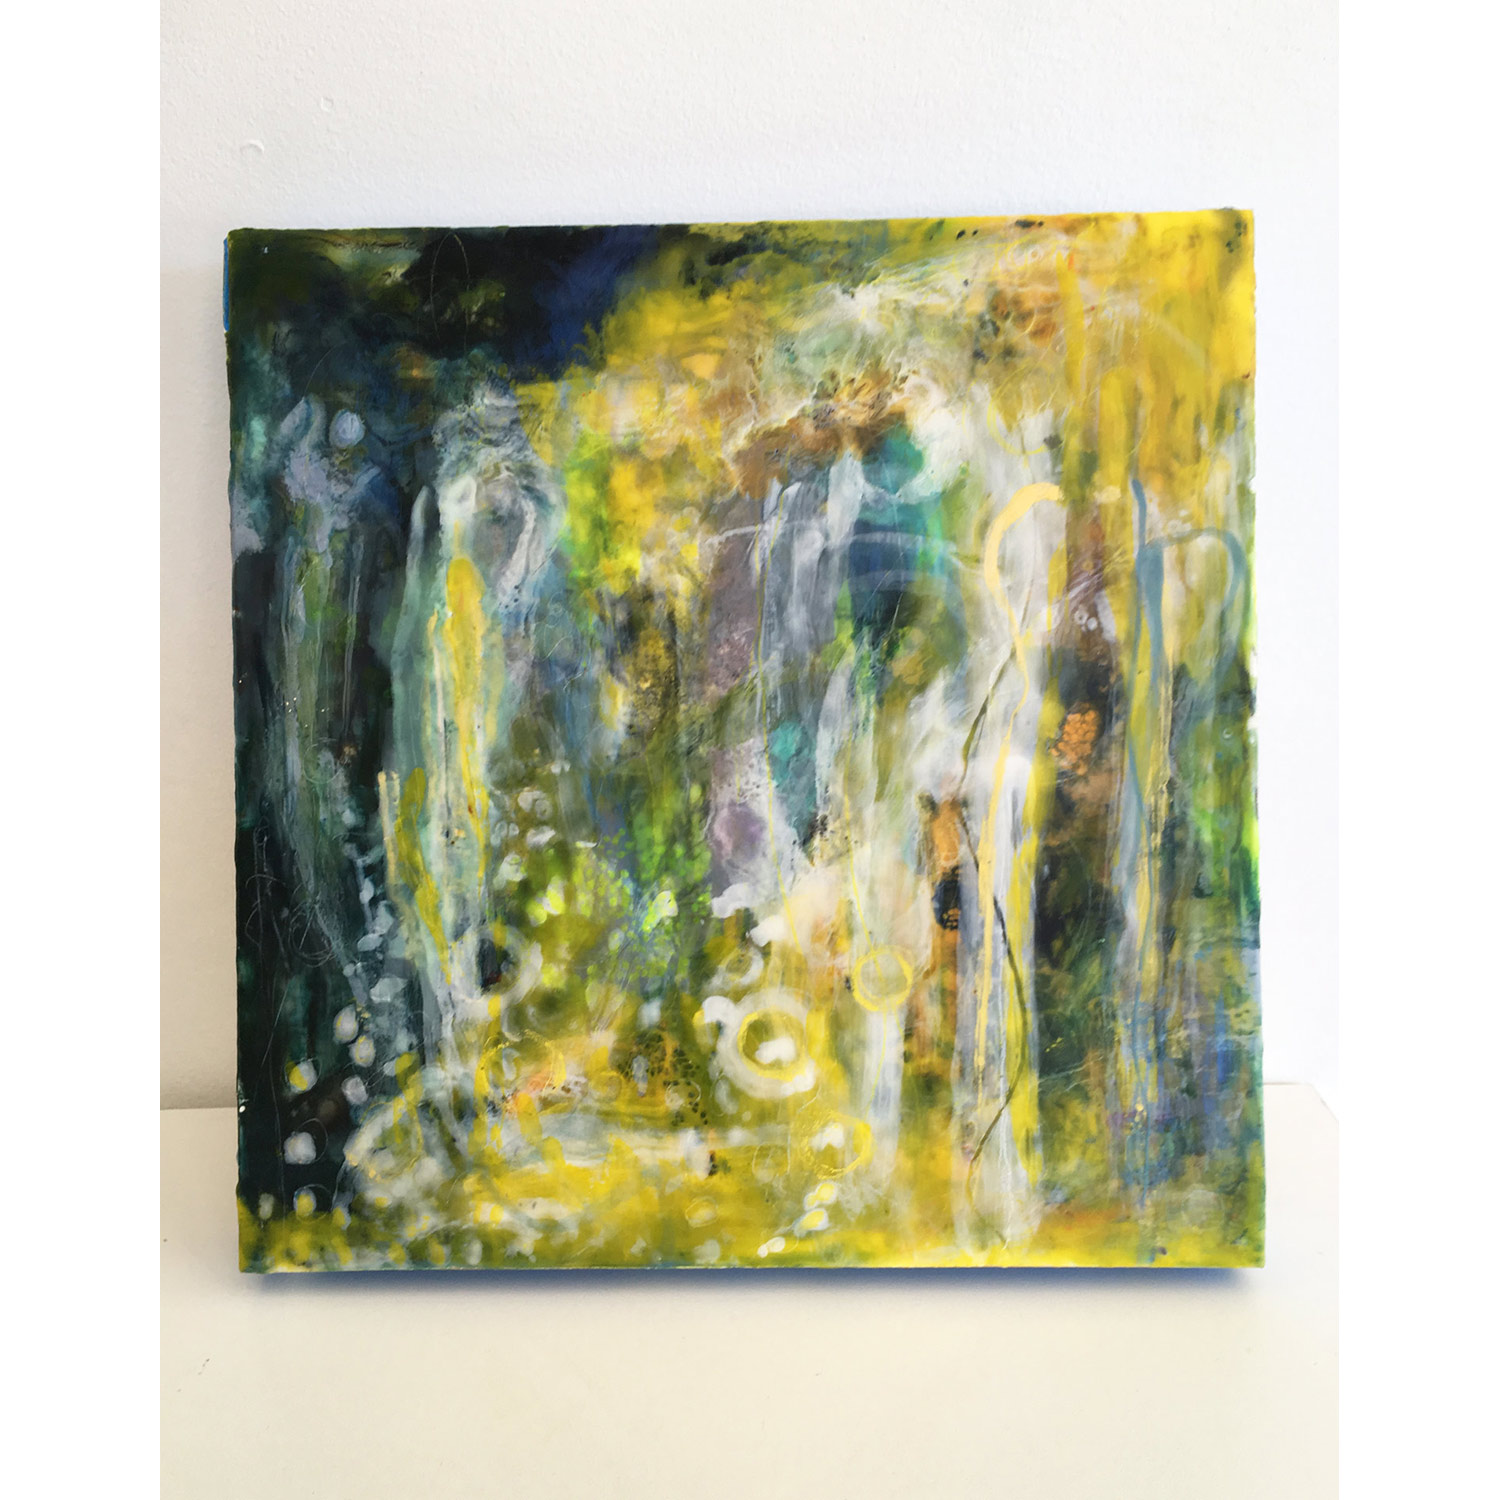 Big Drops at Last  $850 Encaustic and mixed media on cradled birch panel, 40 x 40cm   Enquire